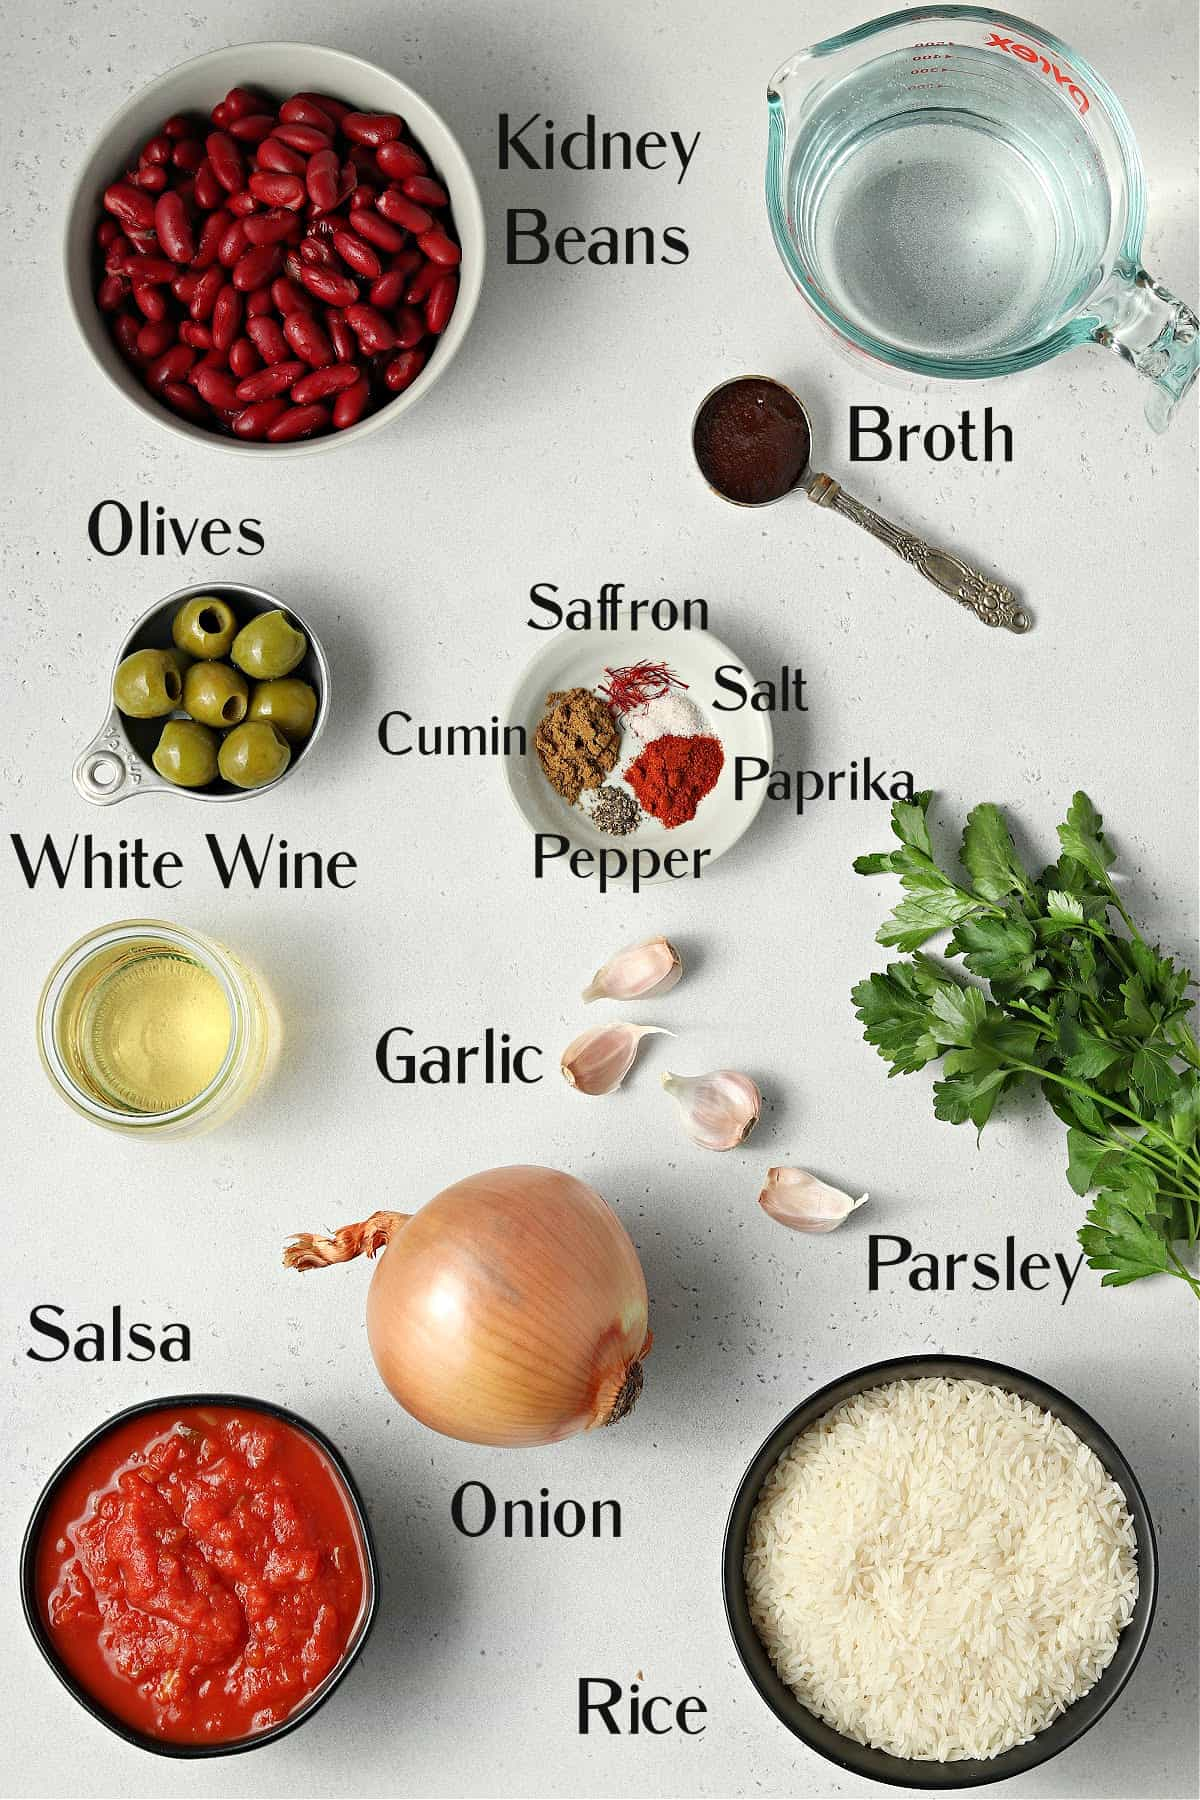 All ingredients to make the rice on a stone table top.